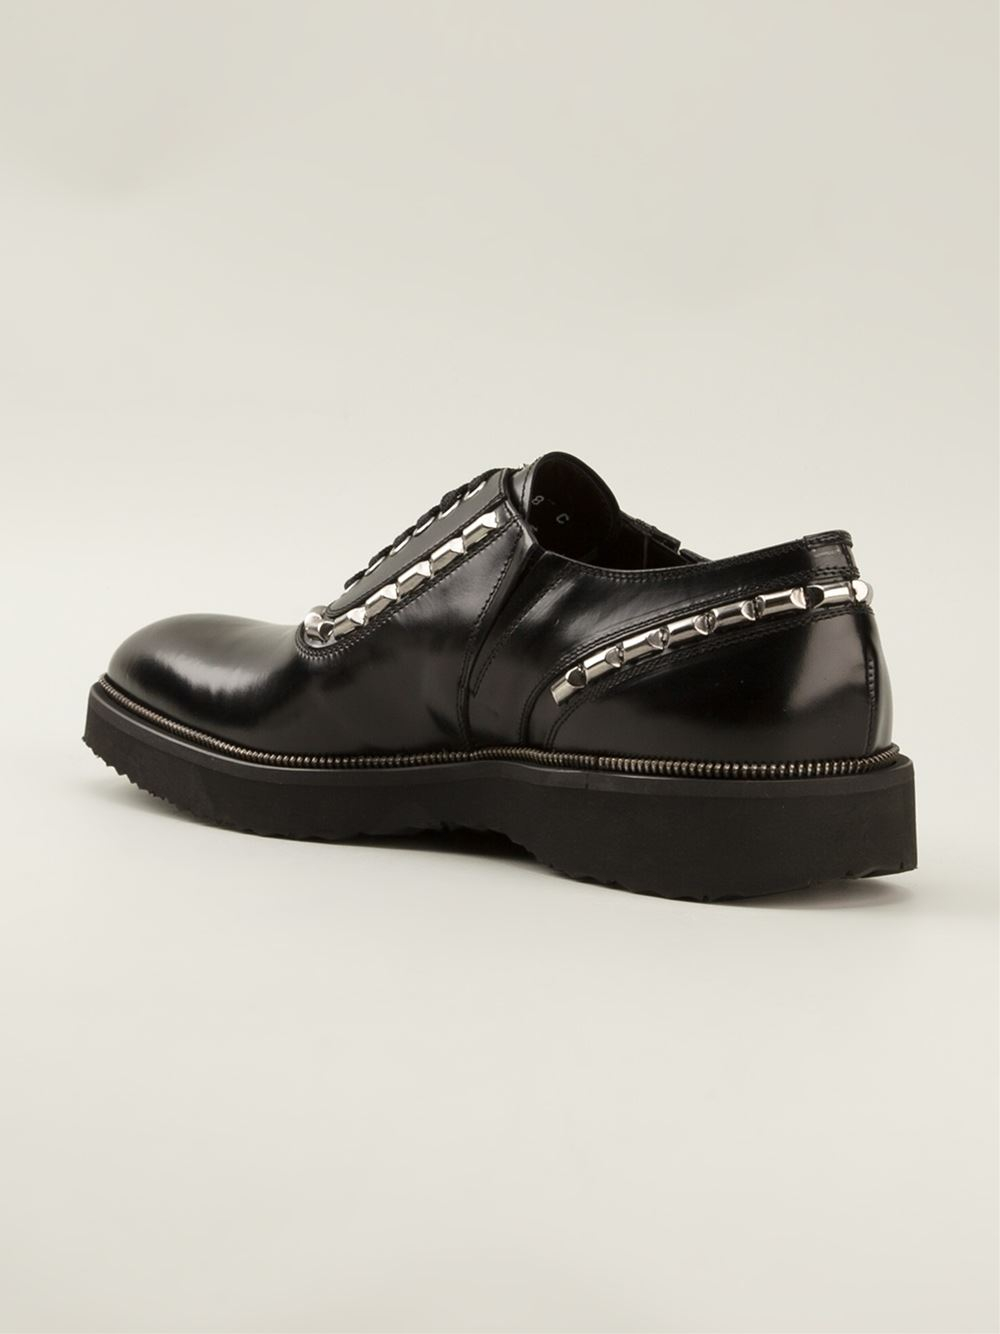 Cesare Paciotti Studded Shoes in Black for Men